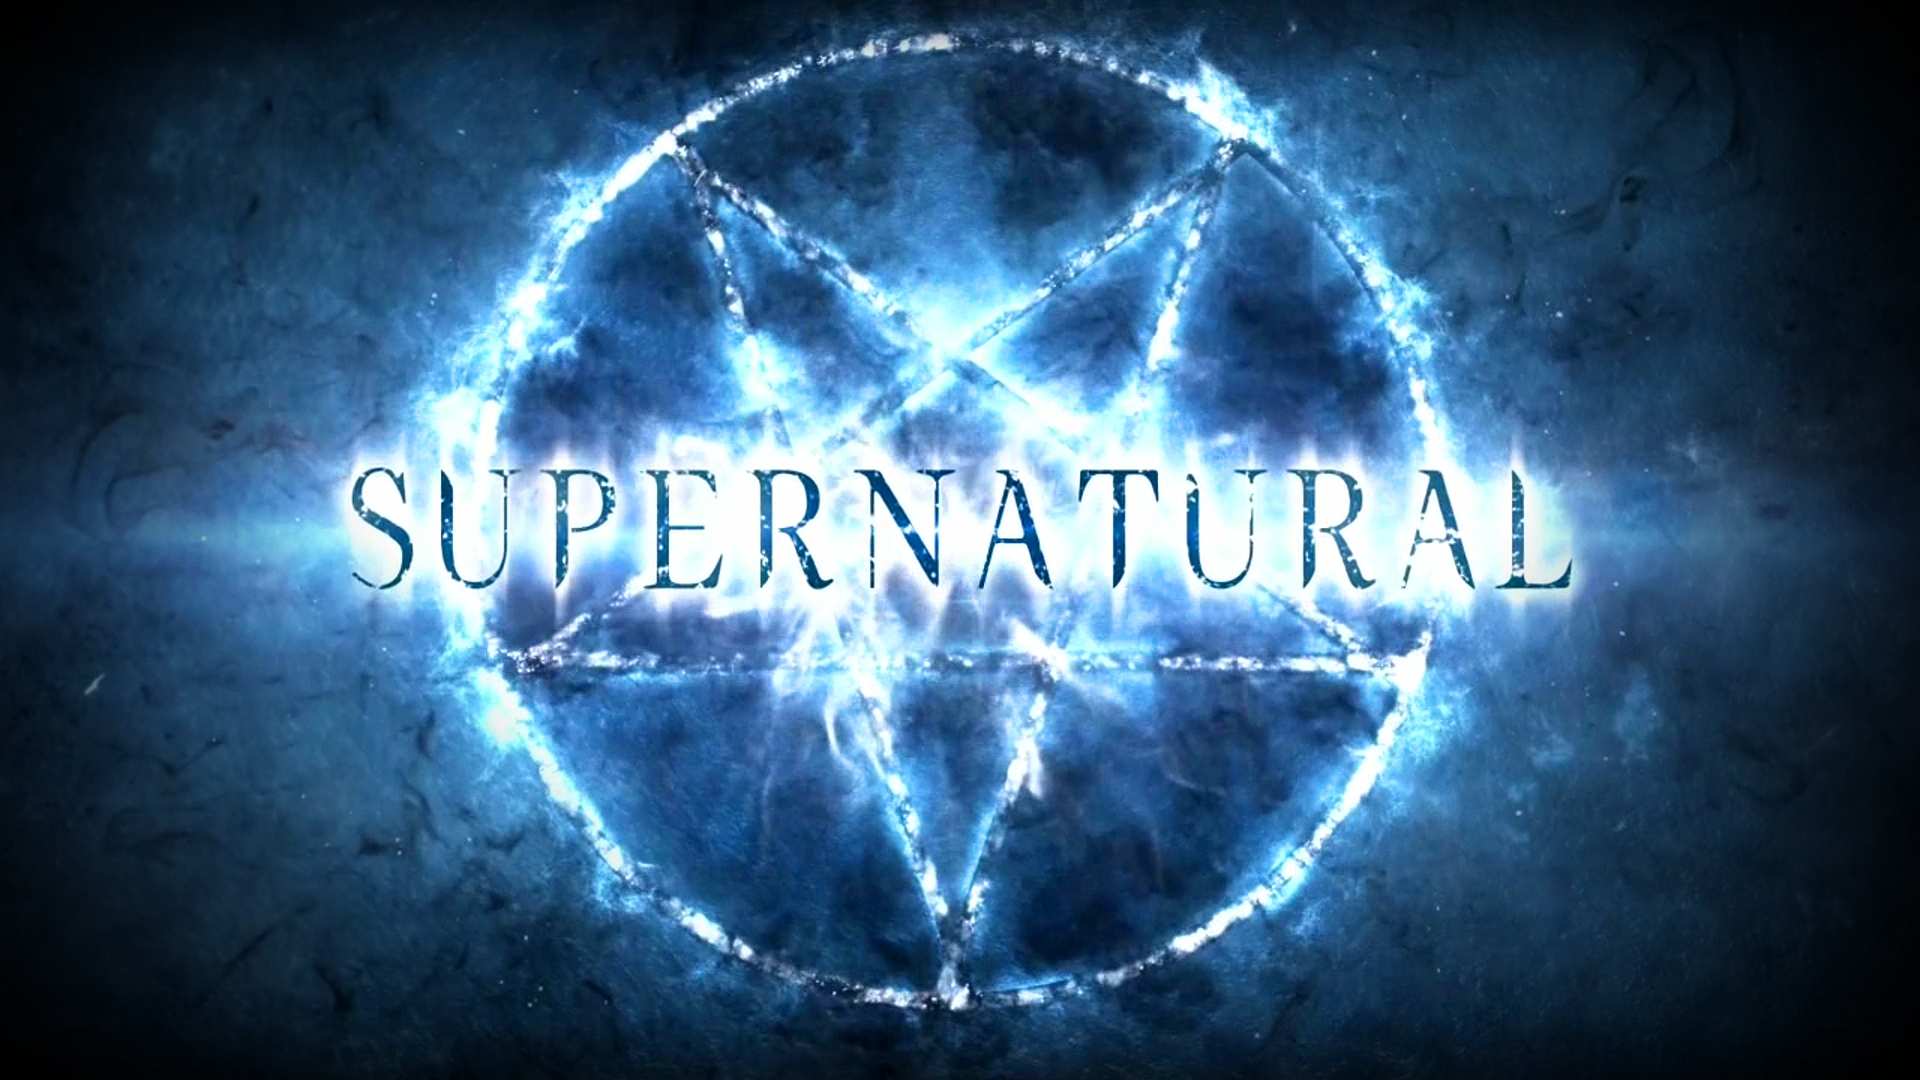 Supernatural Wallpapers High Resolution and Quality Download